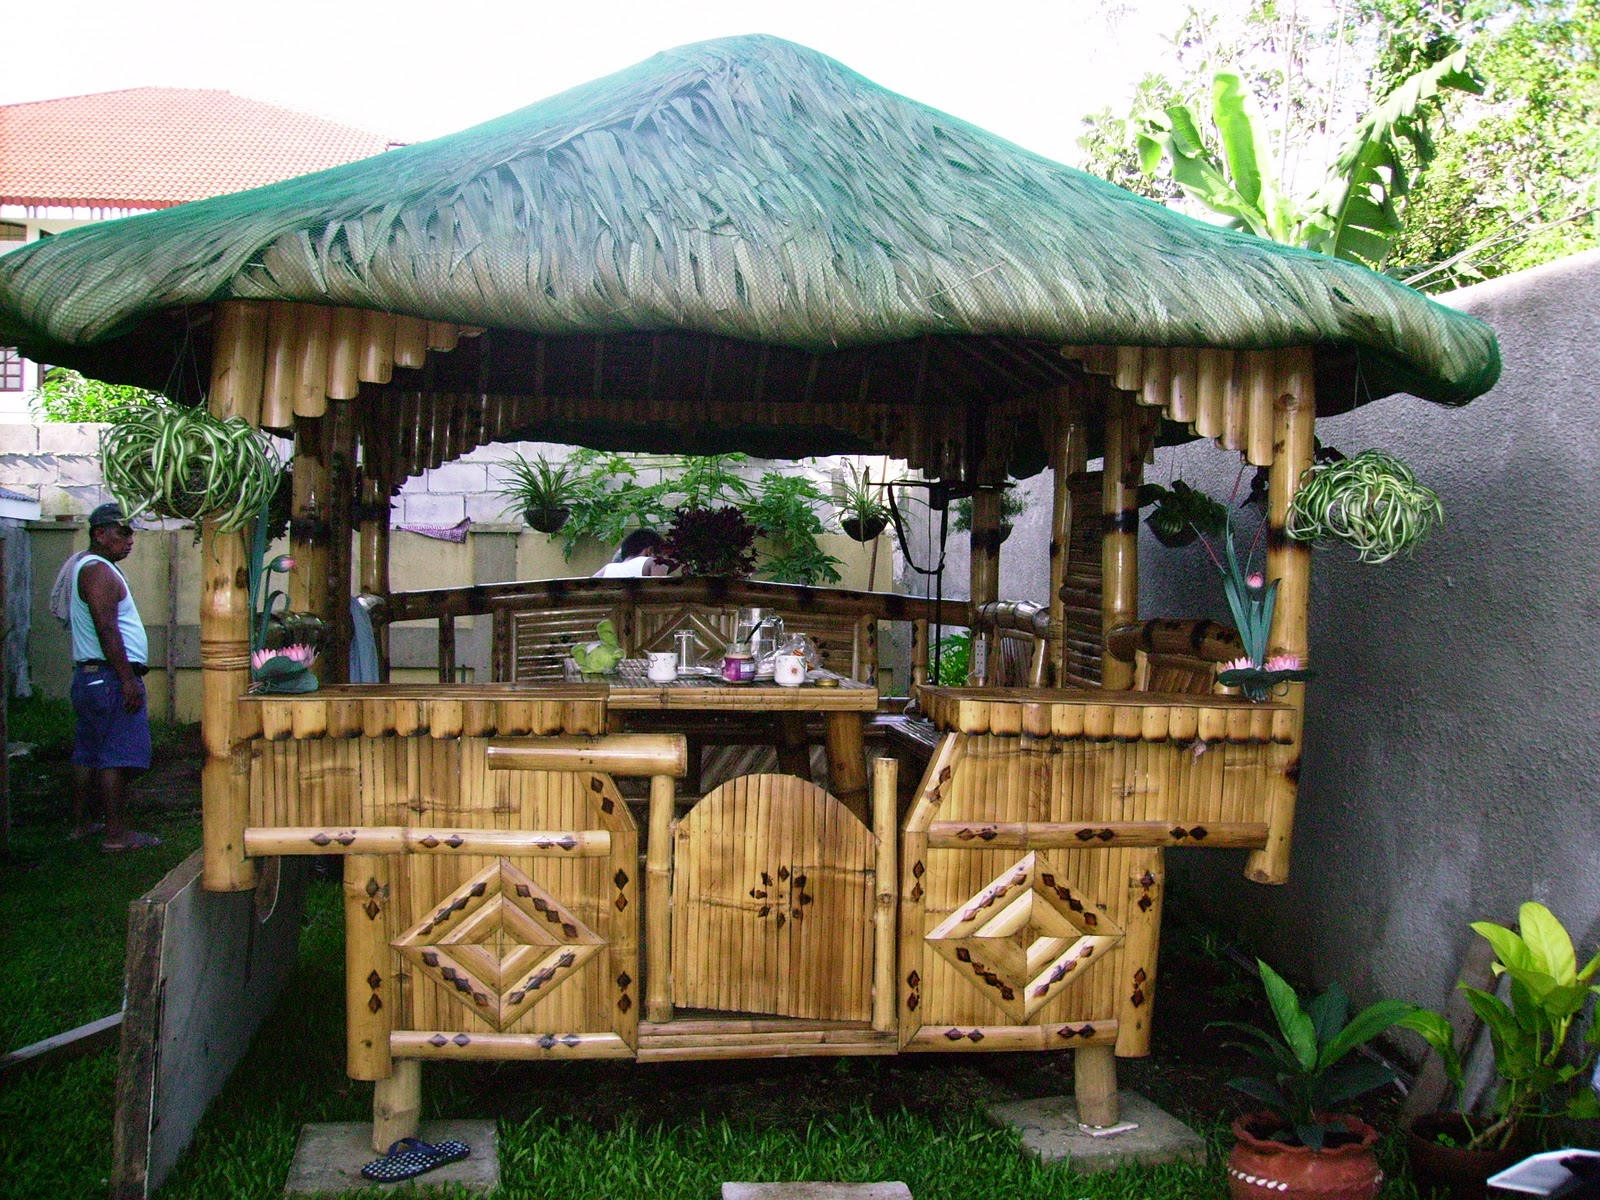 Design ideas in addition philippine nipa hut designs on nature